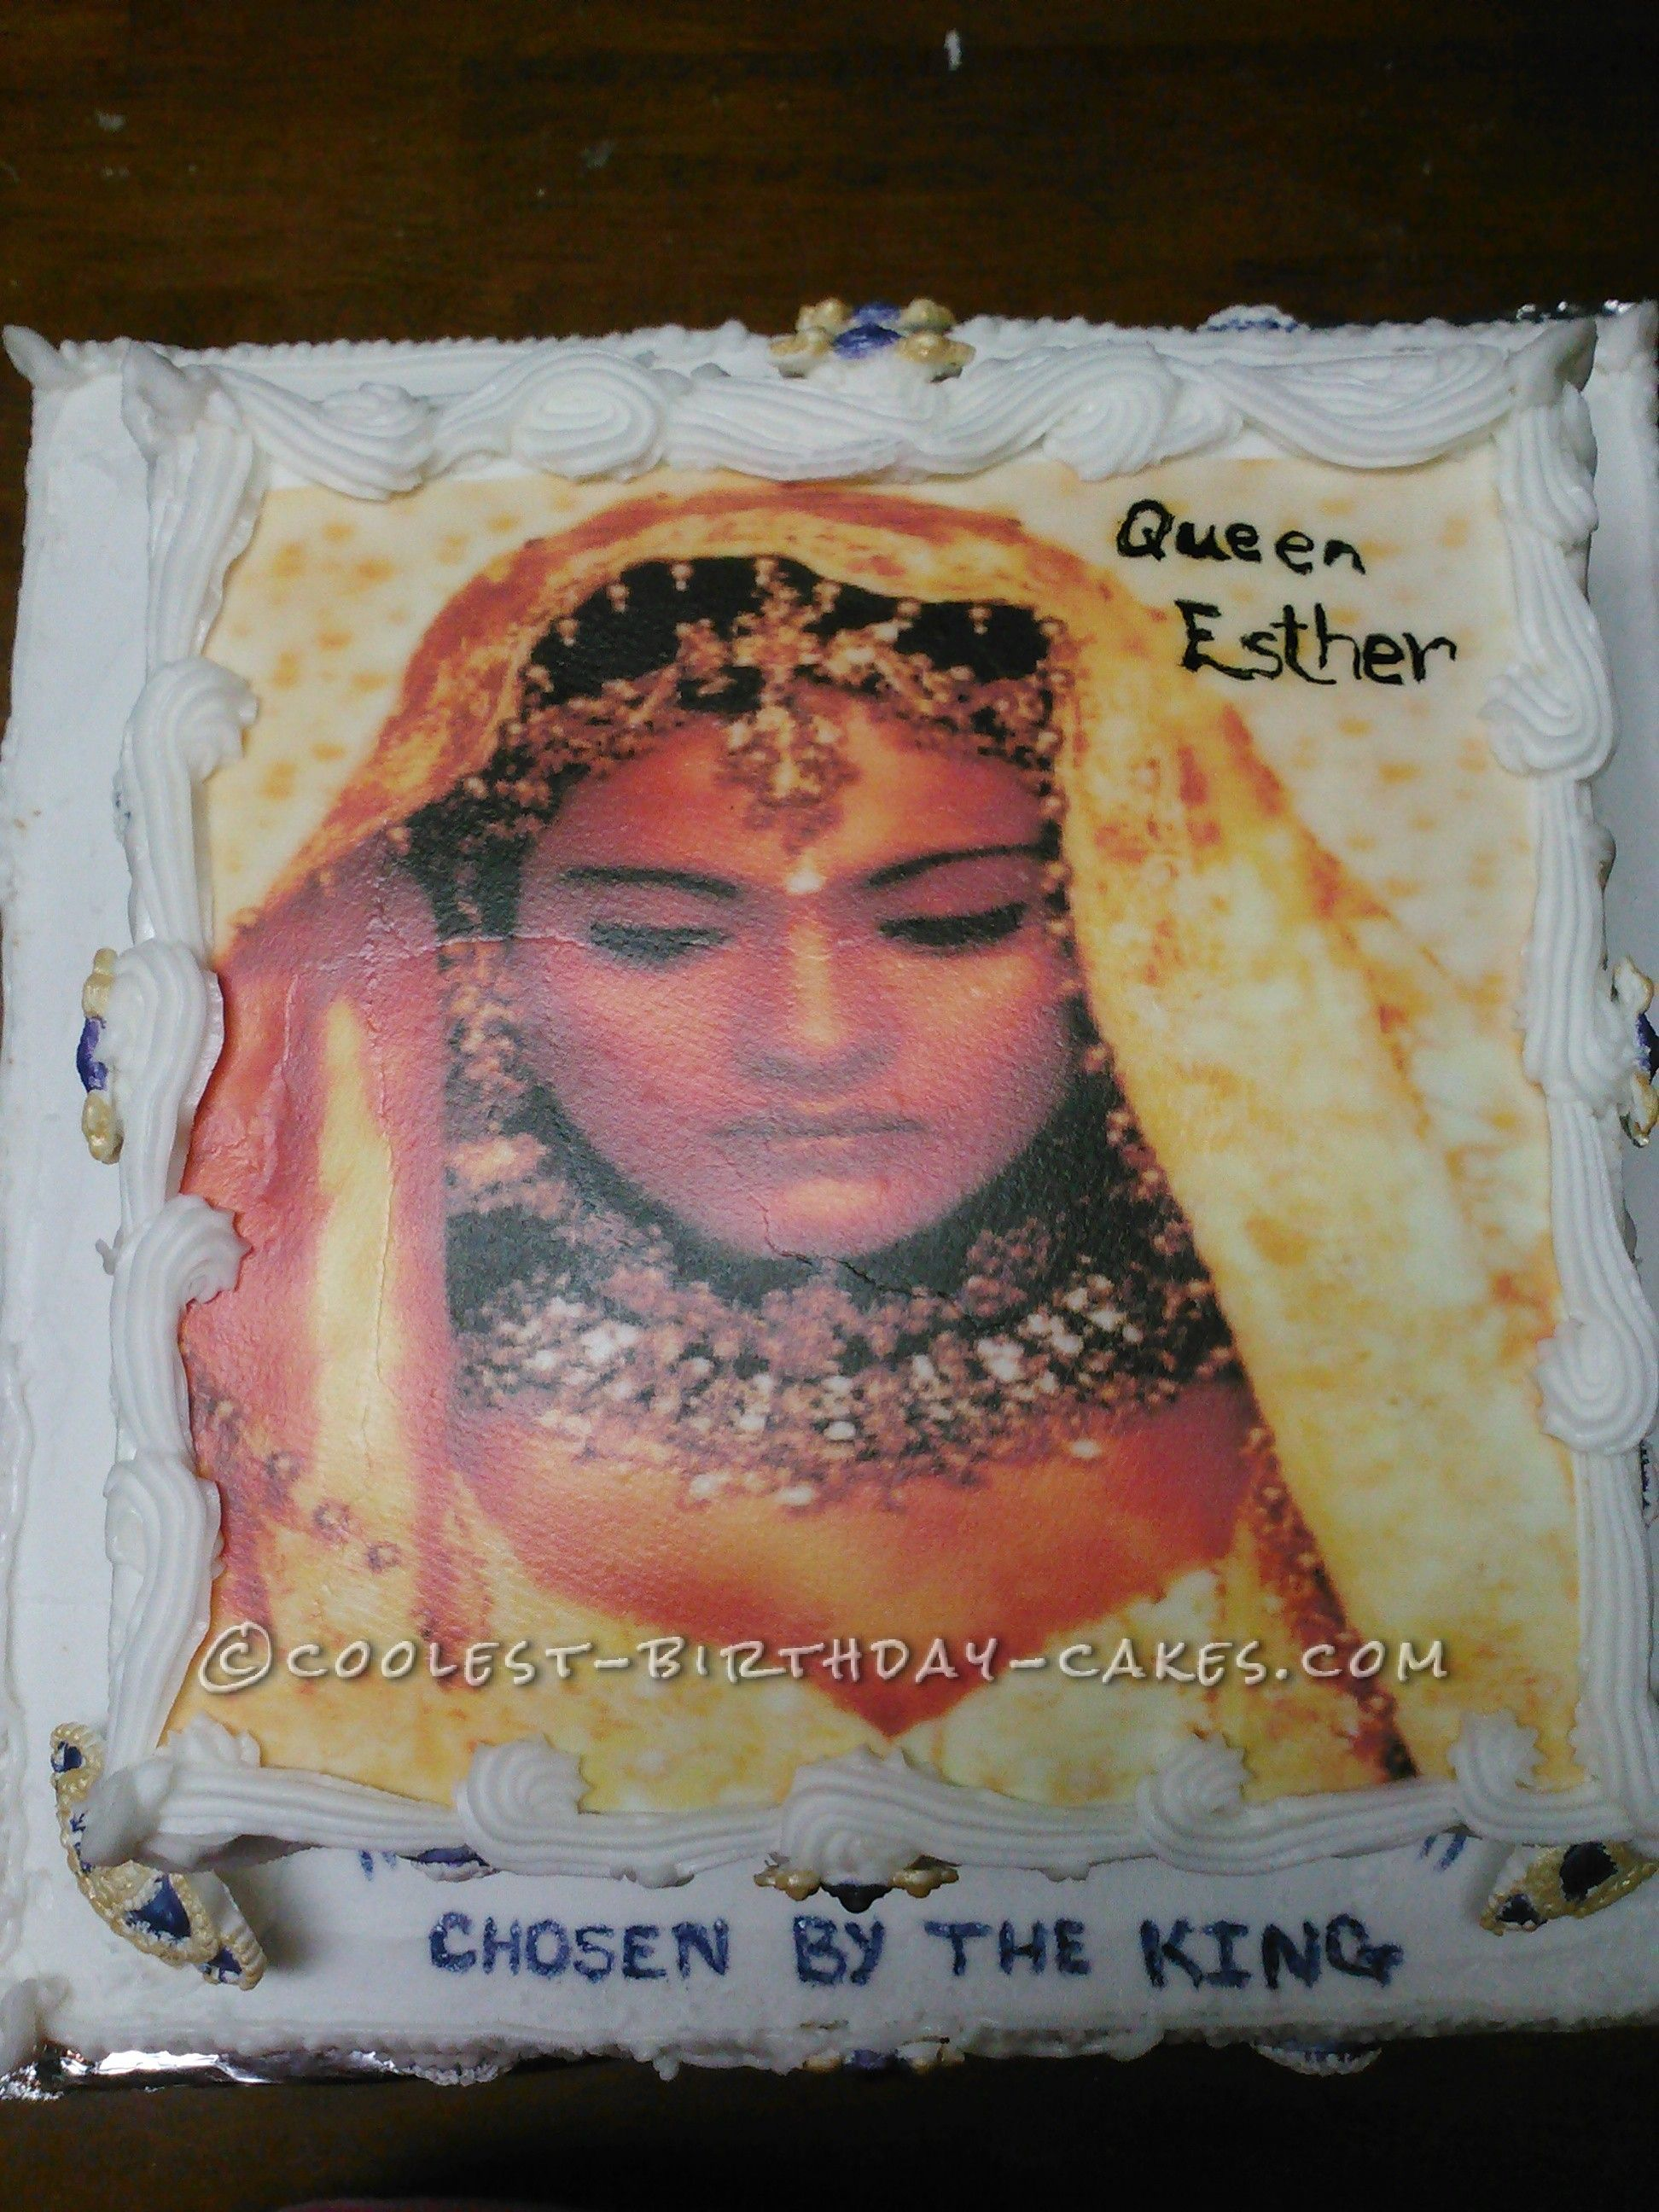 Coolest Queen Esther Cake Queen esther Birthday cakes and Cake